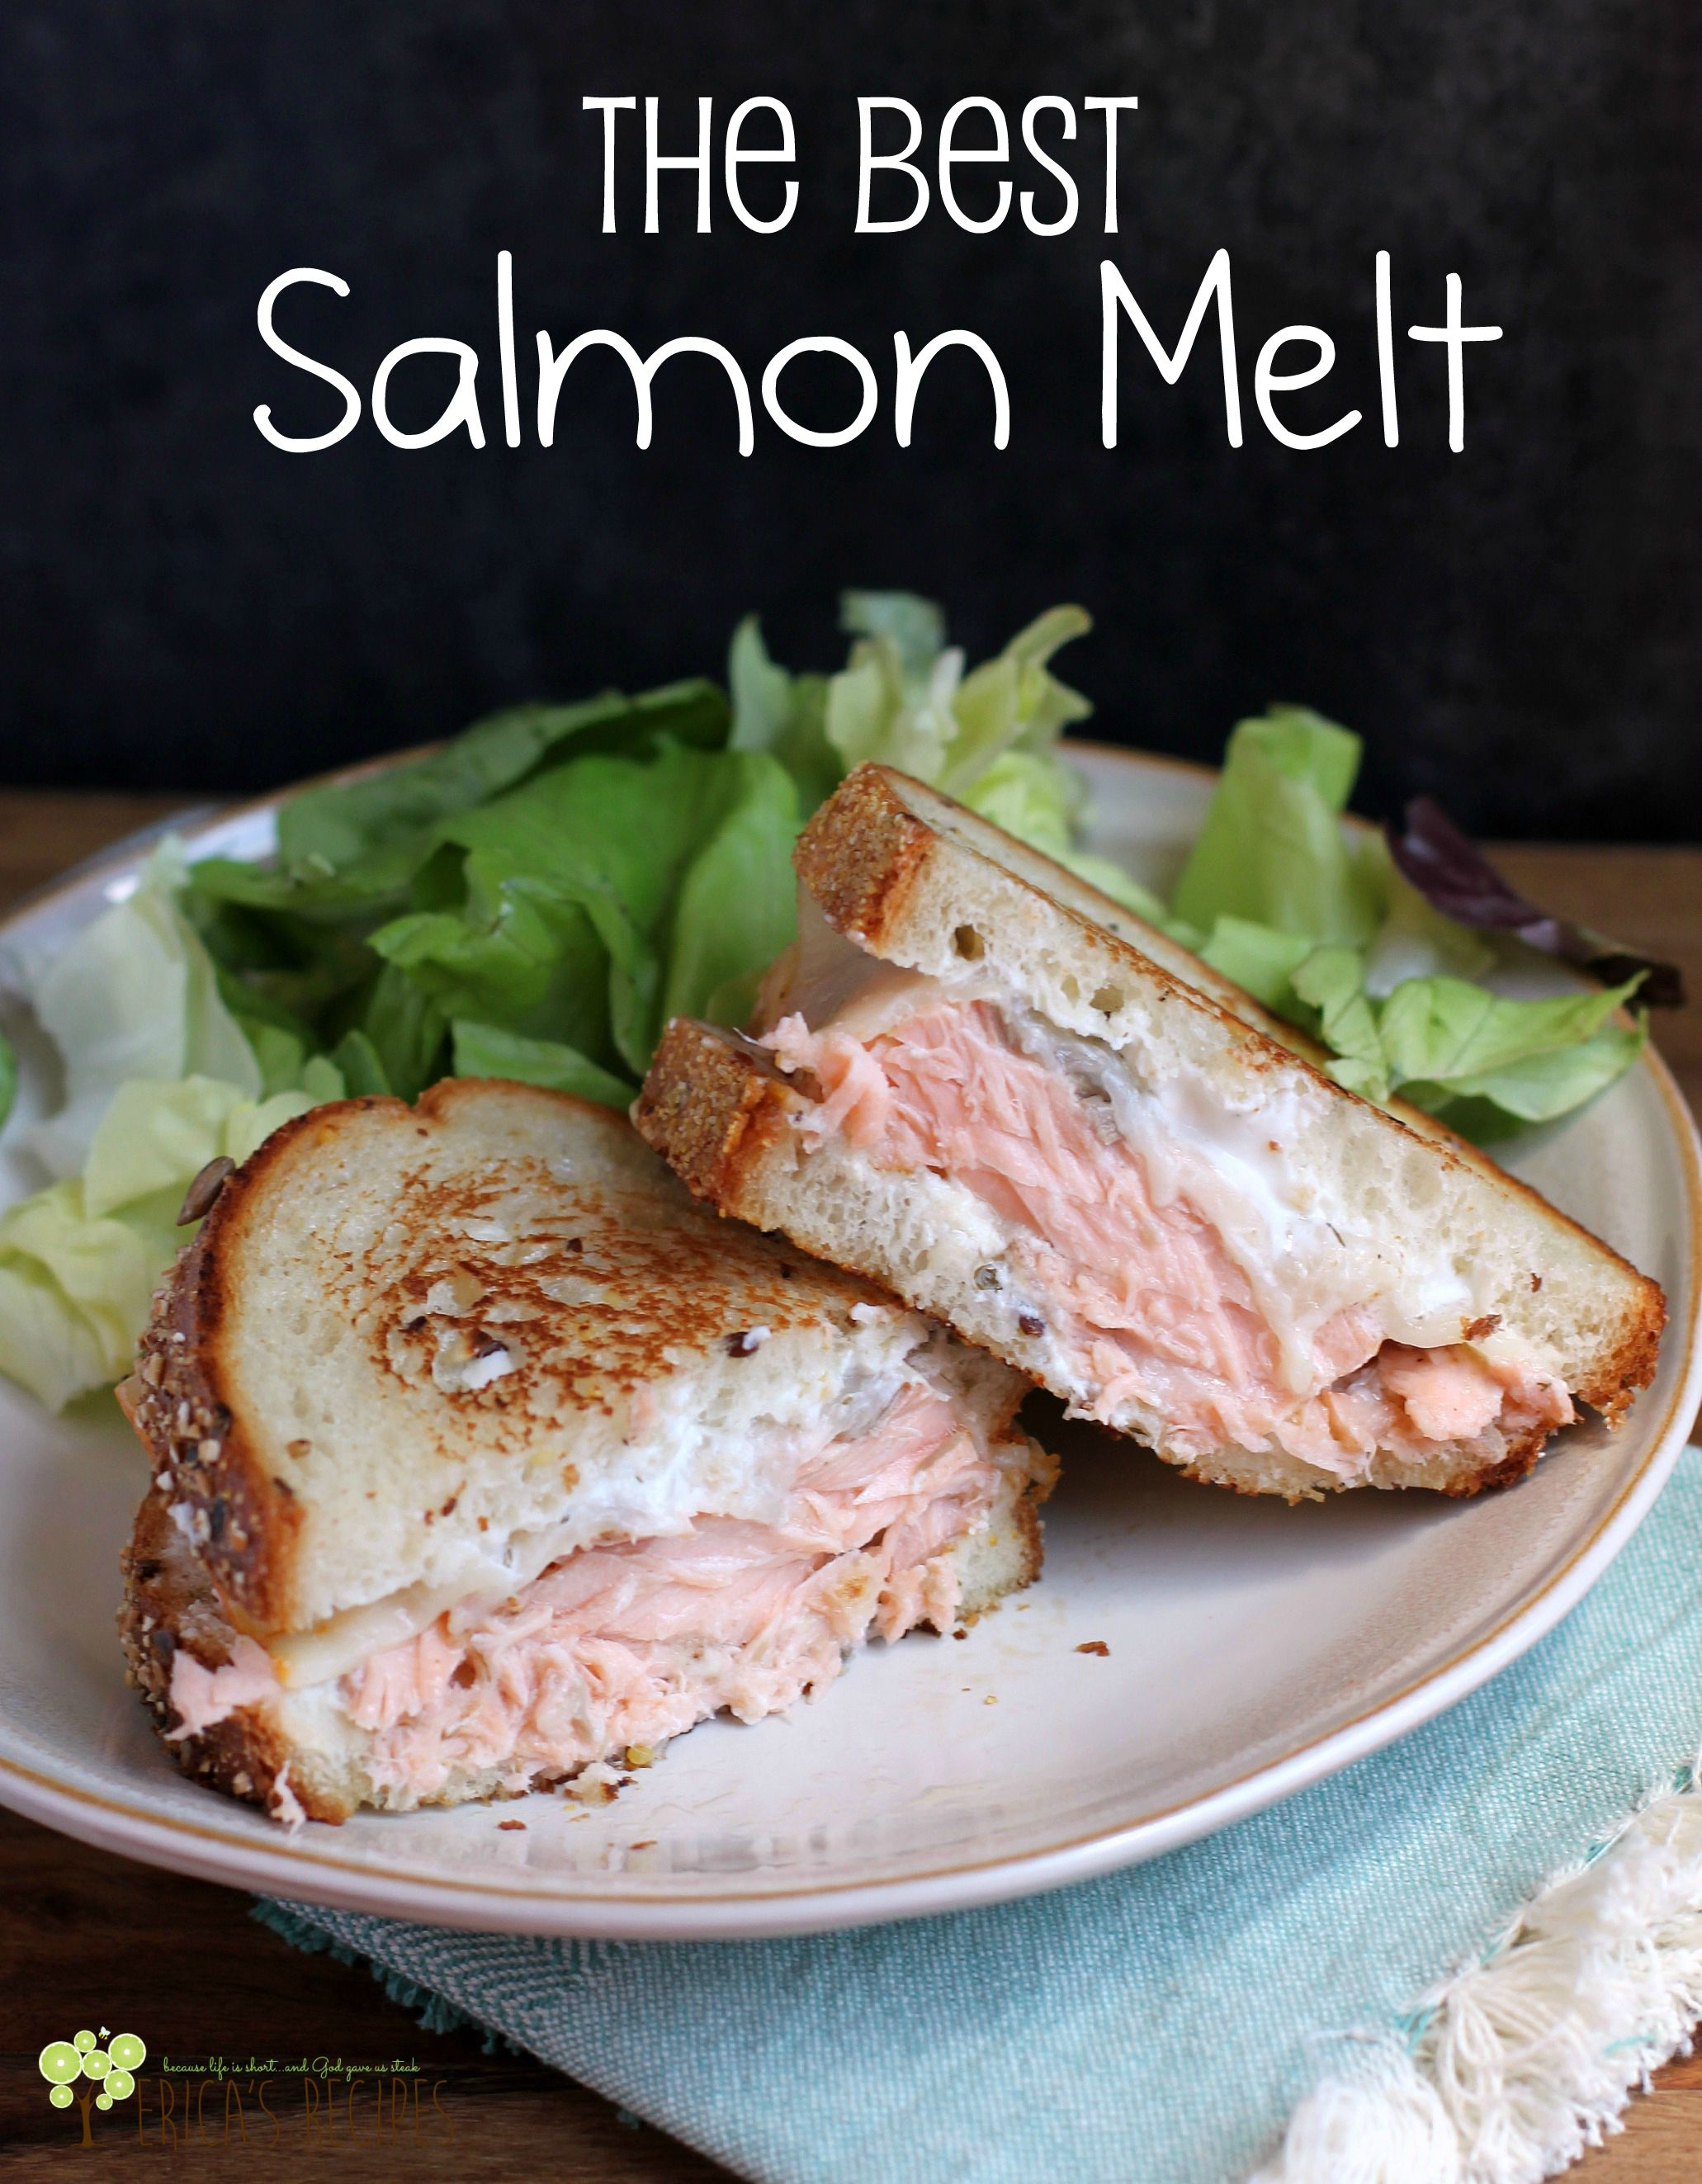 Gorgeous fresh salmon, melty cheese, a little schmere of flavorful yogurt dip, and toasty bread. These are the required elements to give you the Best Salmon Melt sandwich. Ever.